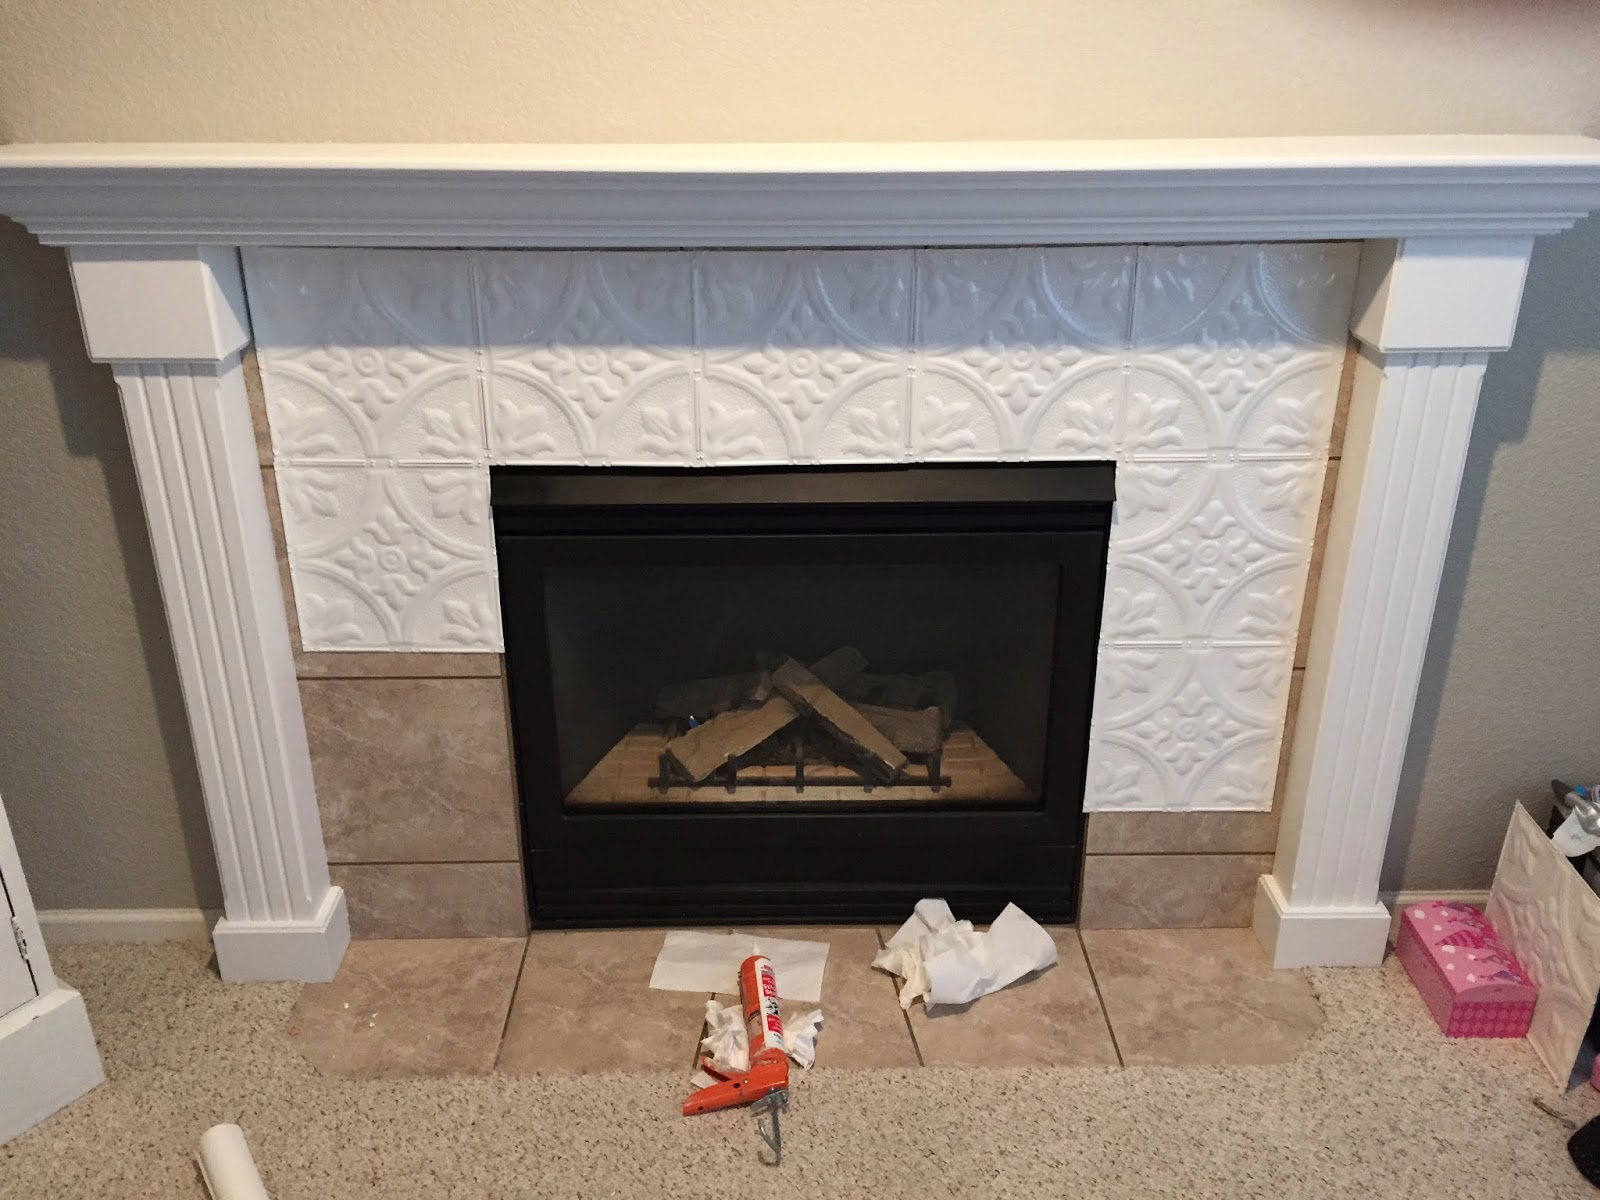 Update Fireplace Tile Html Amazing Home Design 2019